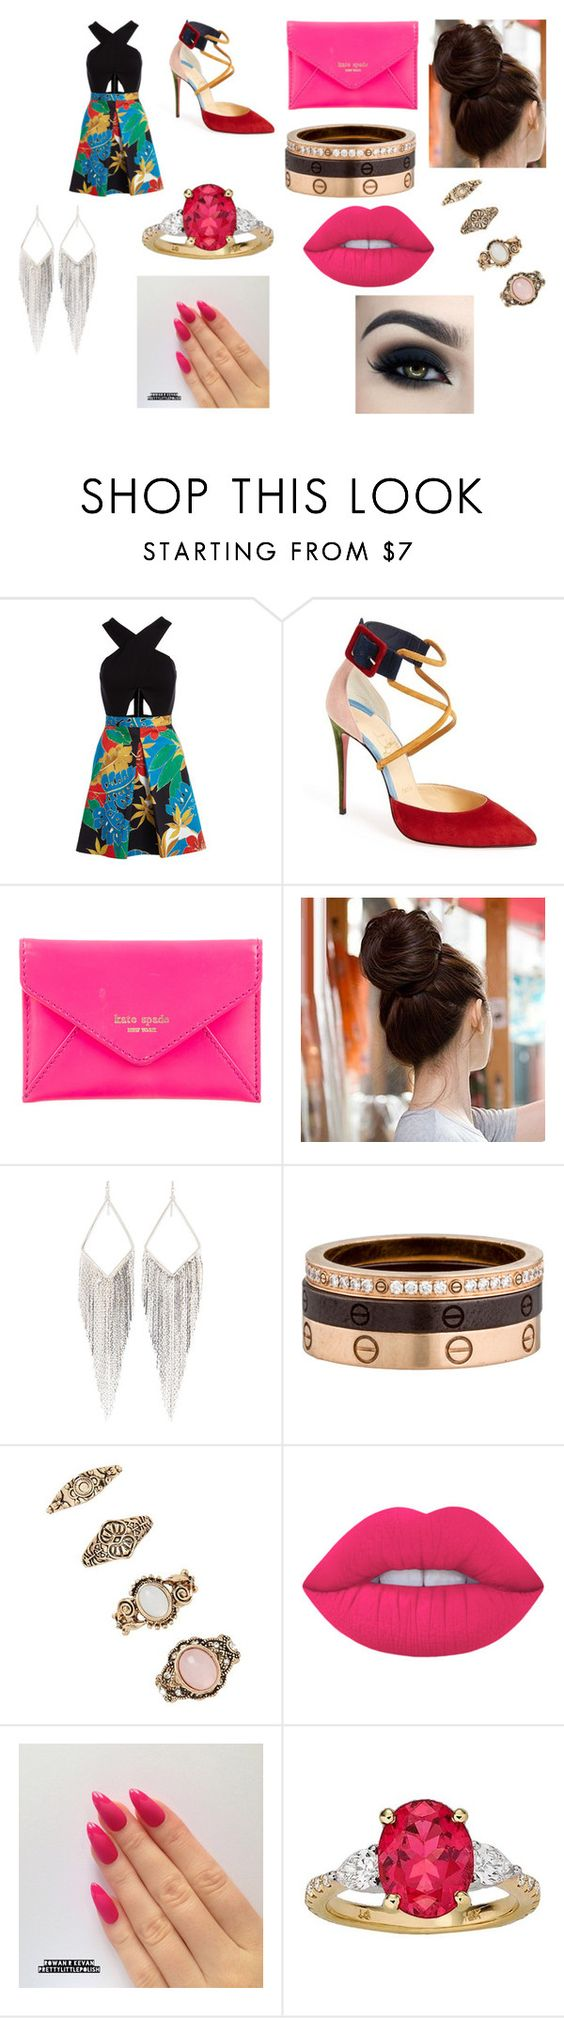 """""""#50"""" by jasmine-c05 ❤ liked on Polyvore featuring Alice + Olivia, Christian Louboutin, Kate Spade, Jules Smith, Cartier, Forever 21 and Lime Crime"""